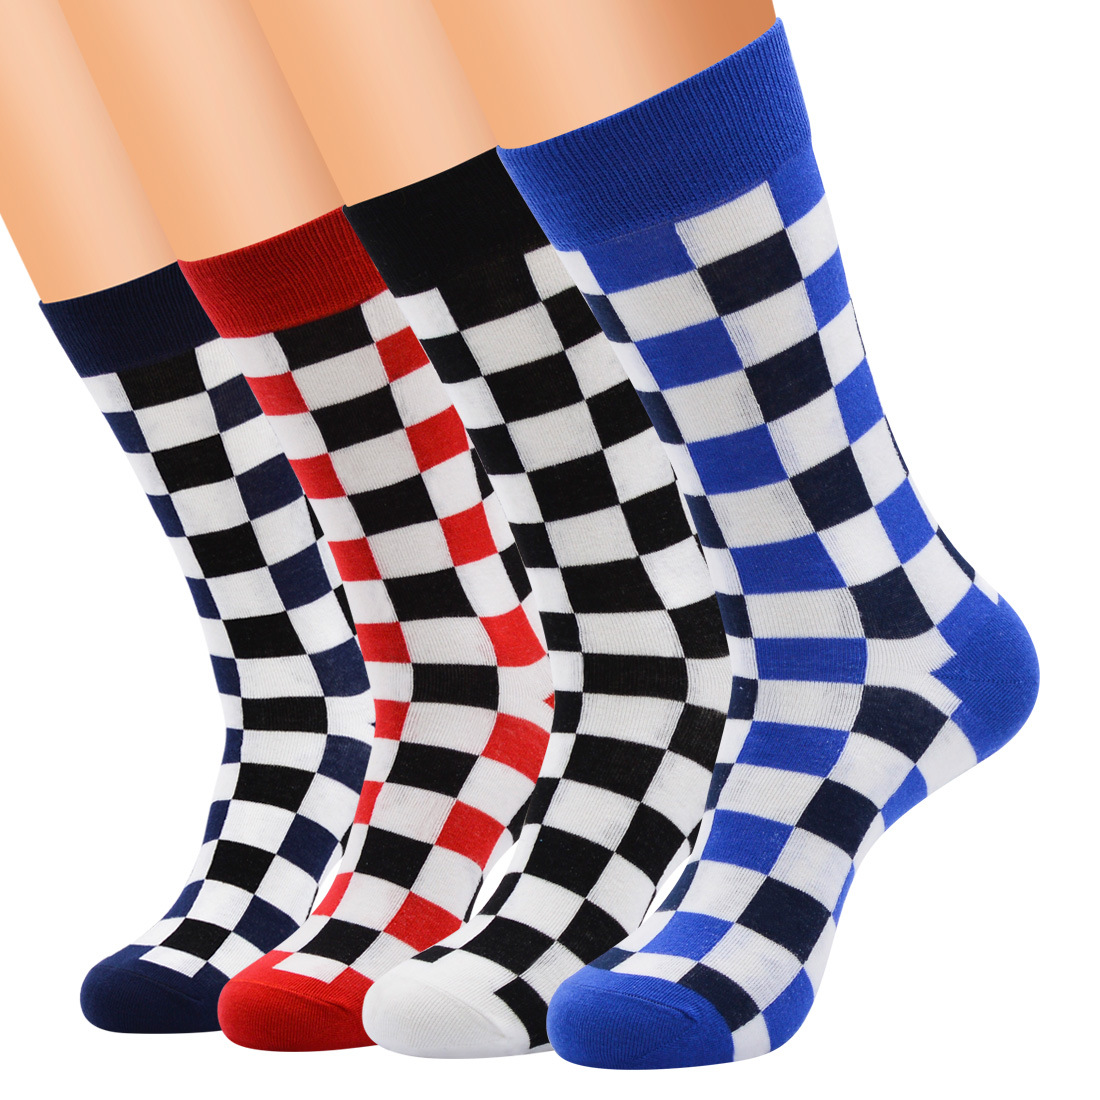 cbe998cacb6a8 US $1.63 |Korea Fashion Harajuku Trends Male Checkerboard Socks Style  Geometric Checkered Socks Men Hip Hop Cotton Unisex Soks-in Men's Socks  from ...